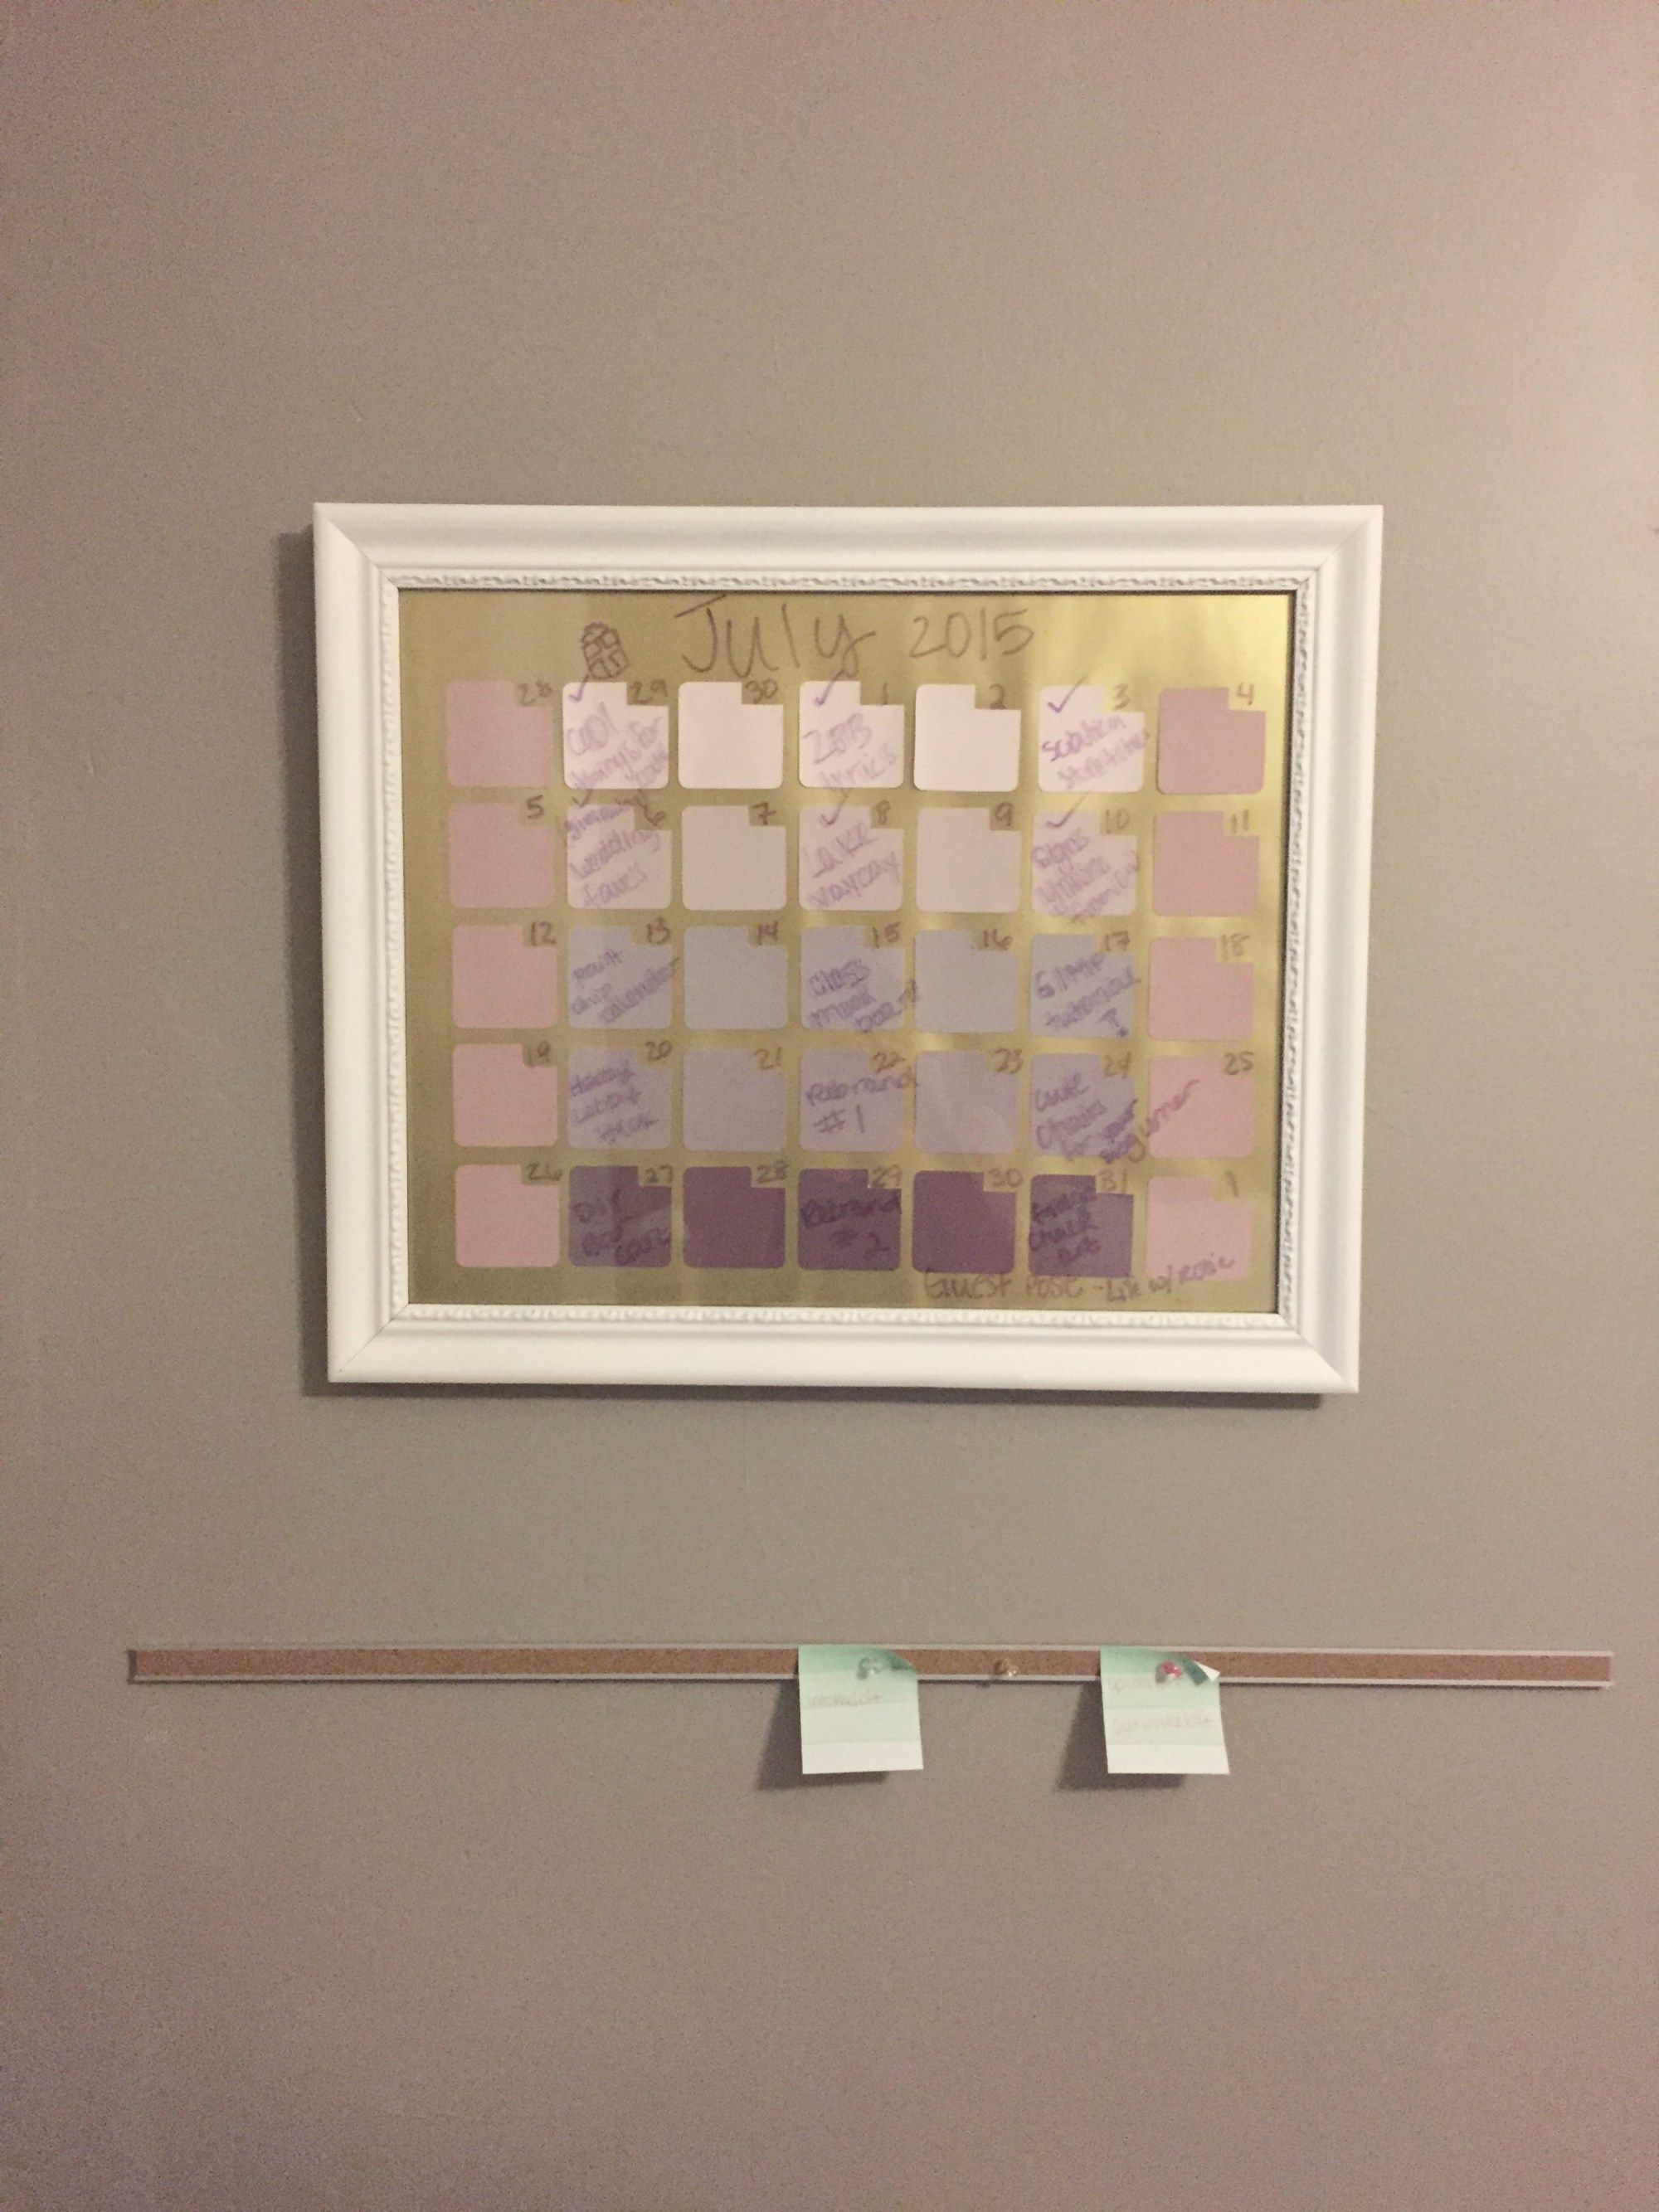 How To Make A Diy Dry Erase Calendar With Paint